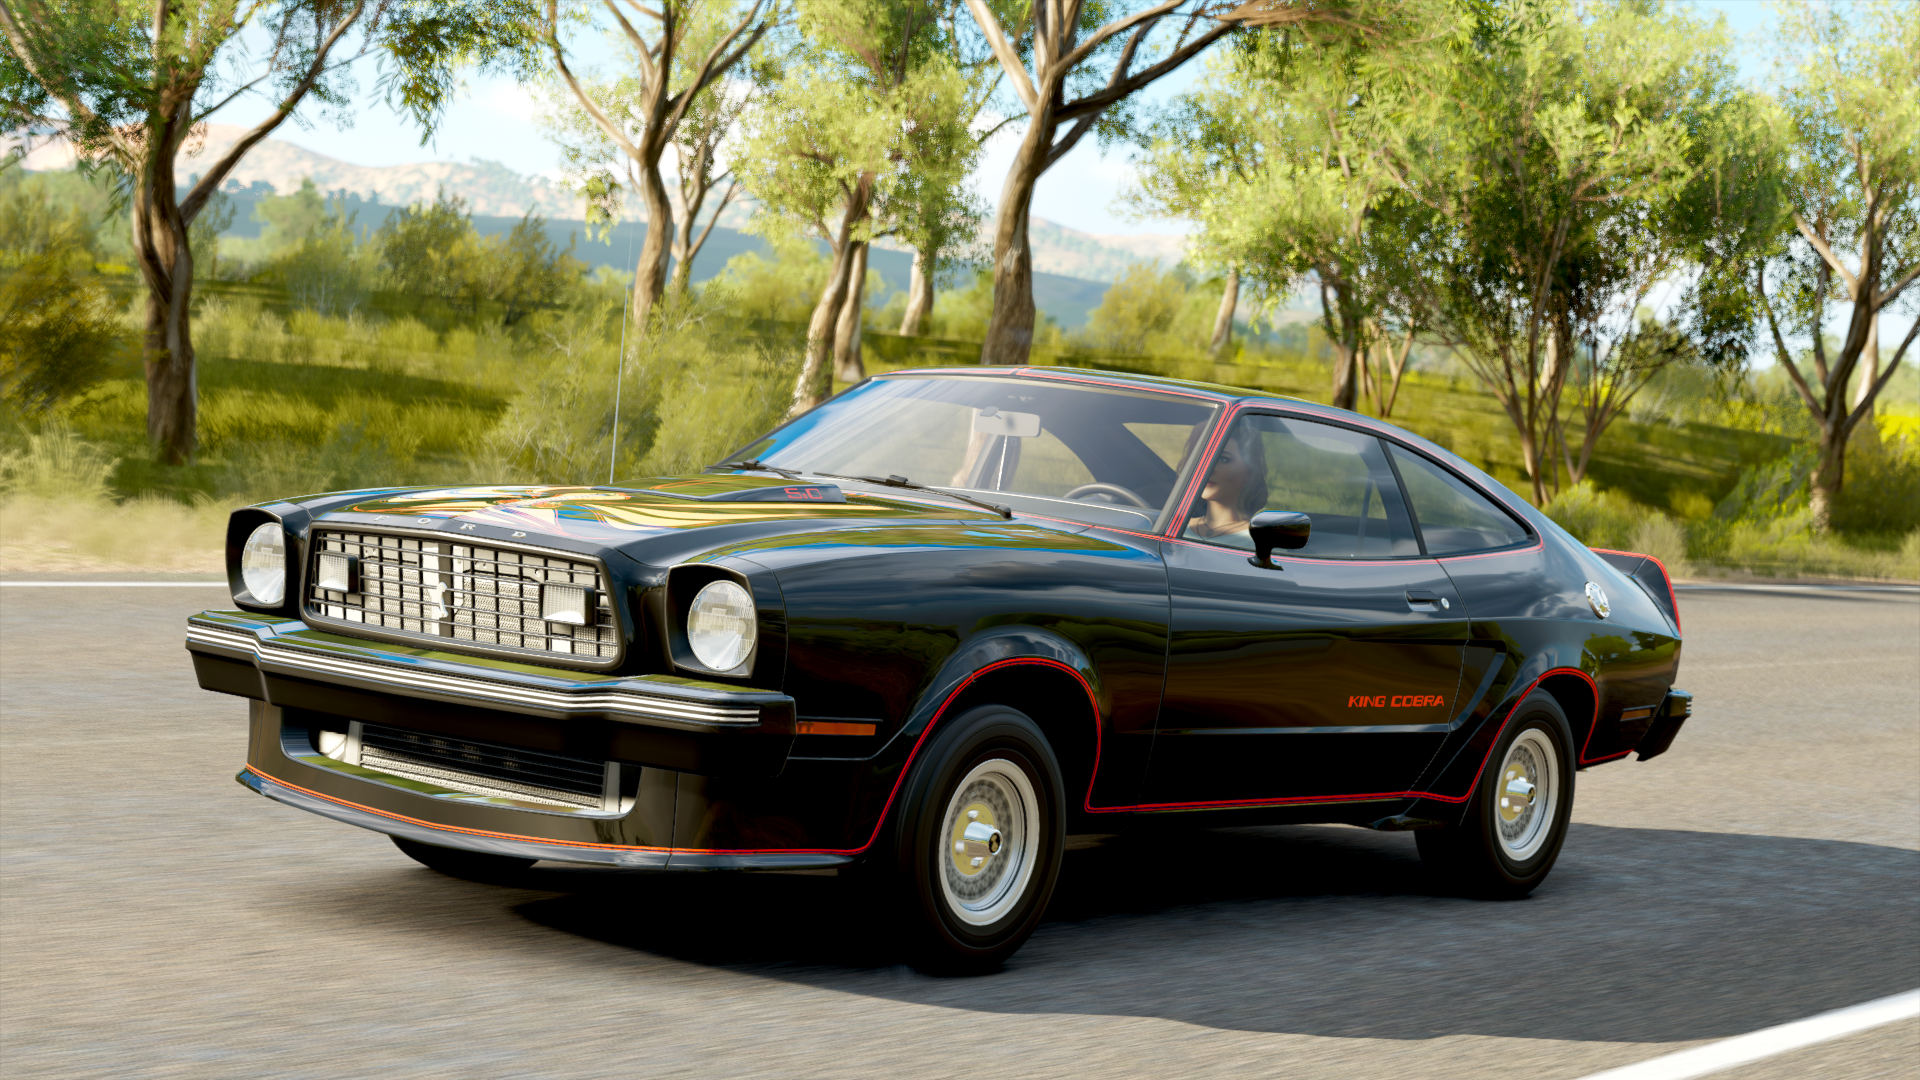 Forza Horizon 3 Cars Turn Signal Description And Operation 64 73 Mustang 1978 Ford Ii King Cobra